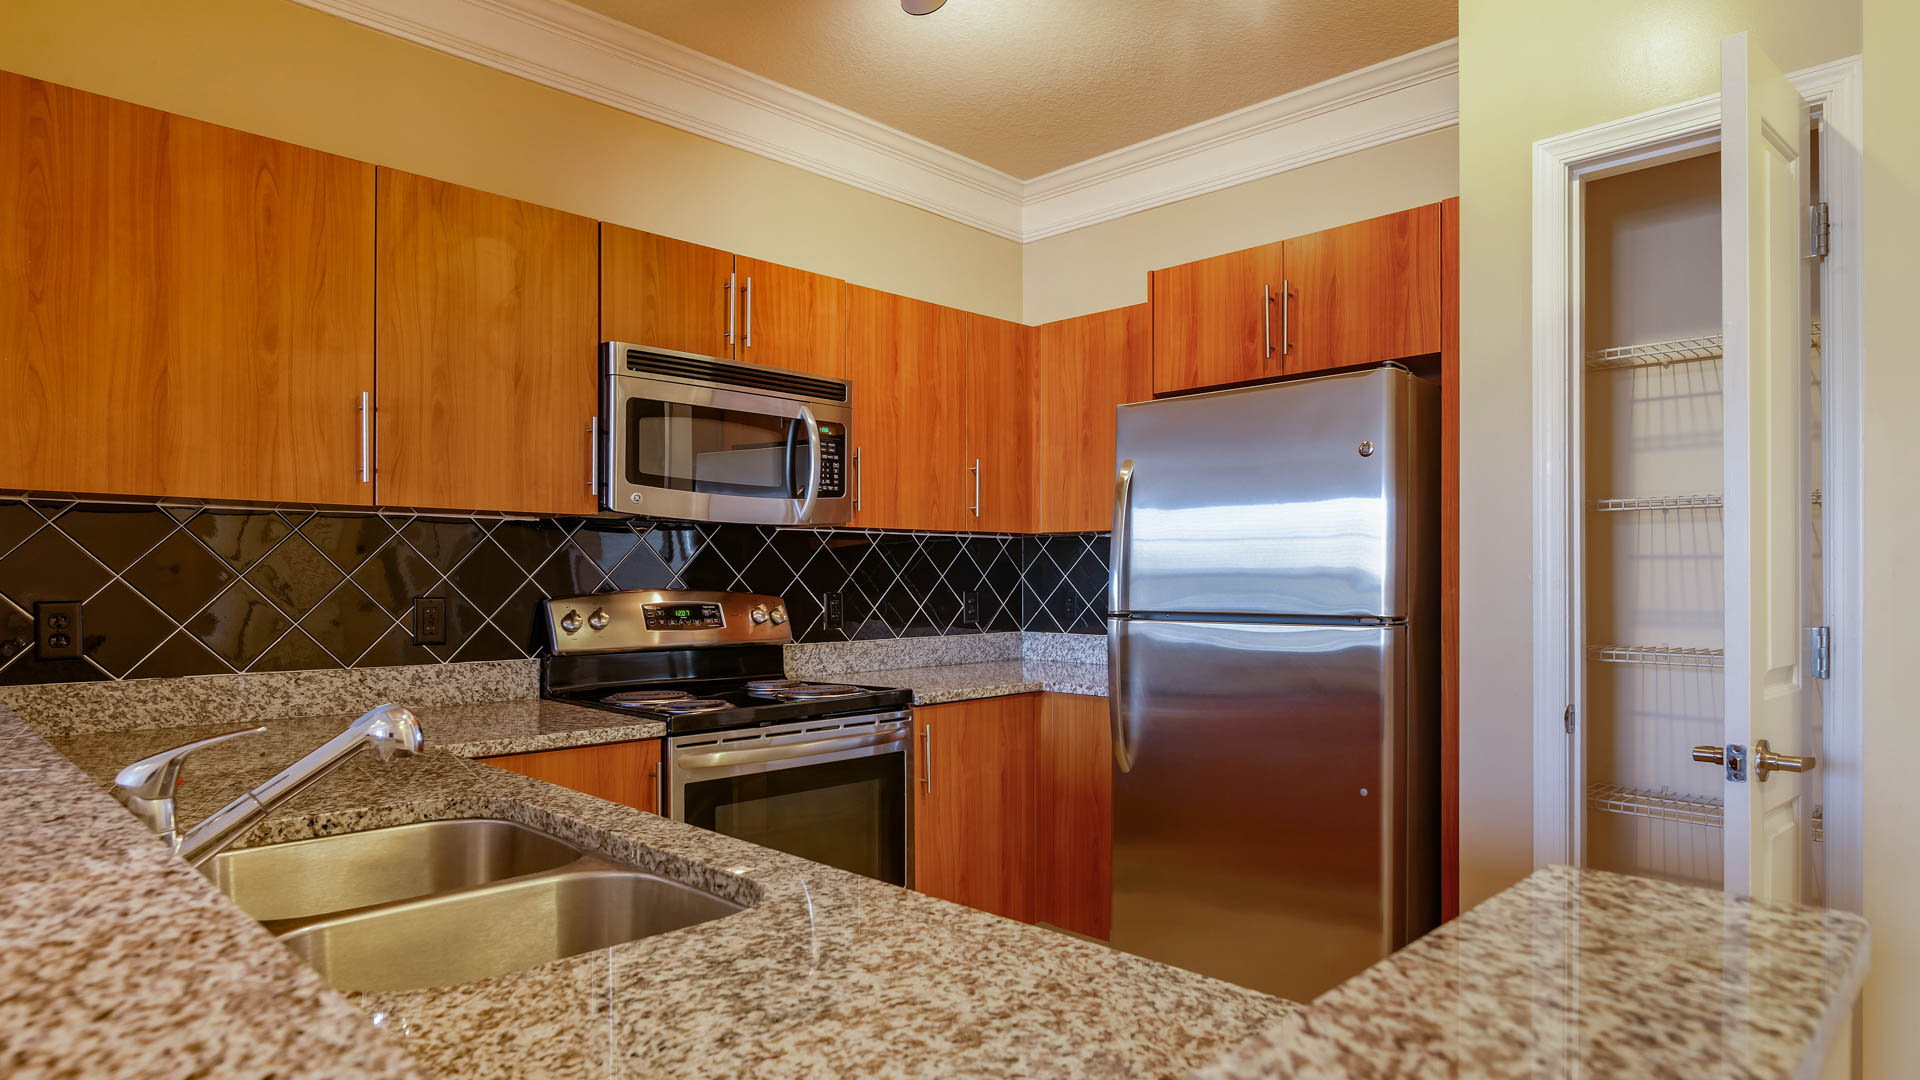 Gaithersburg Station Apartments - Kitchen